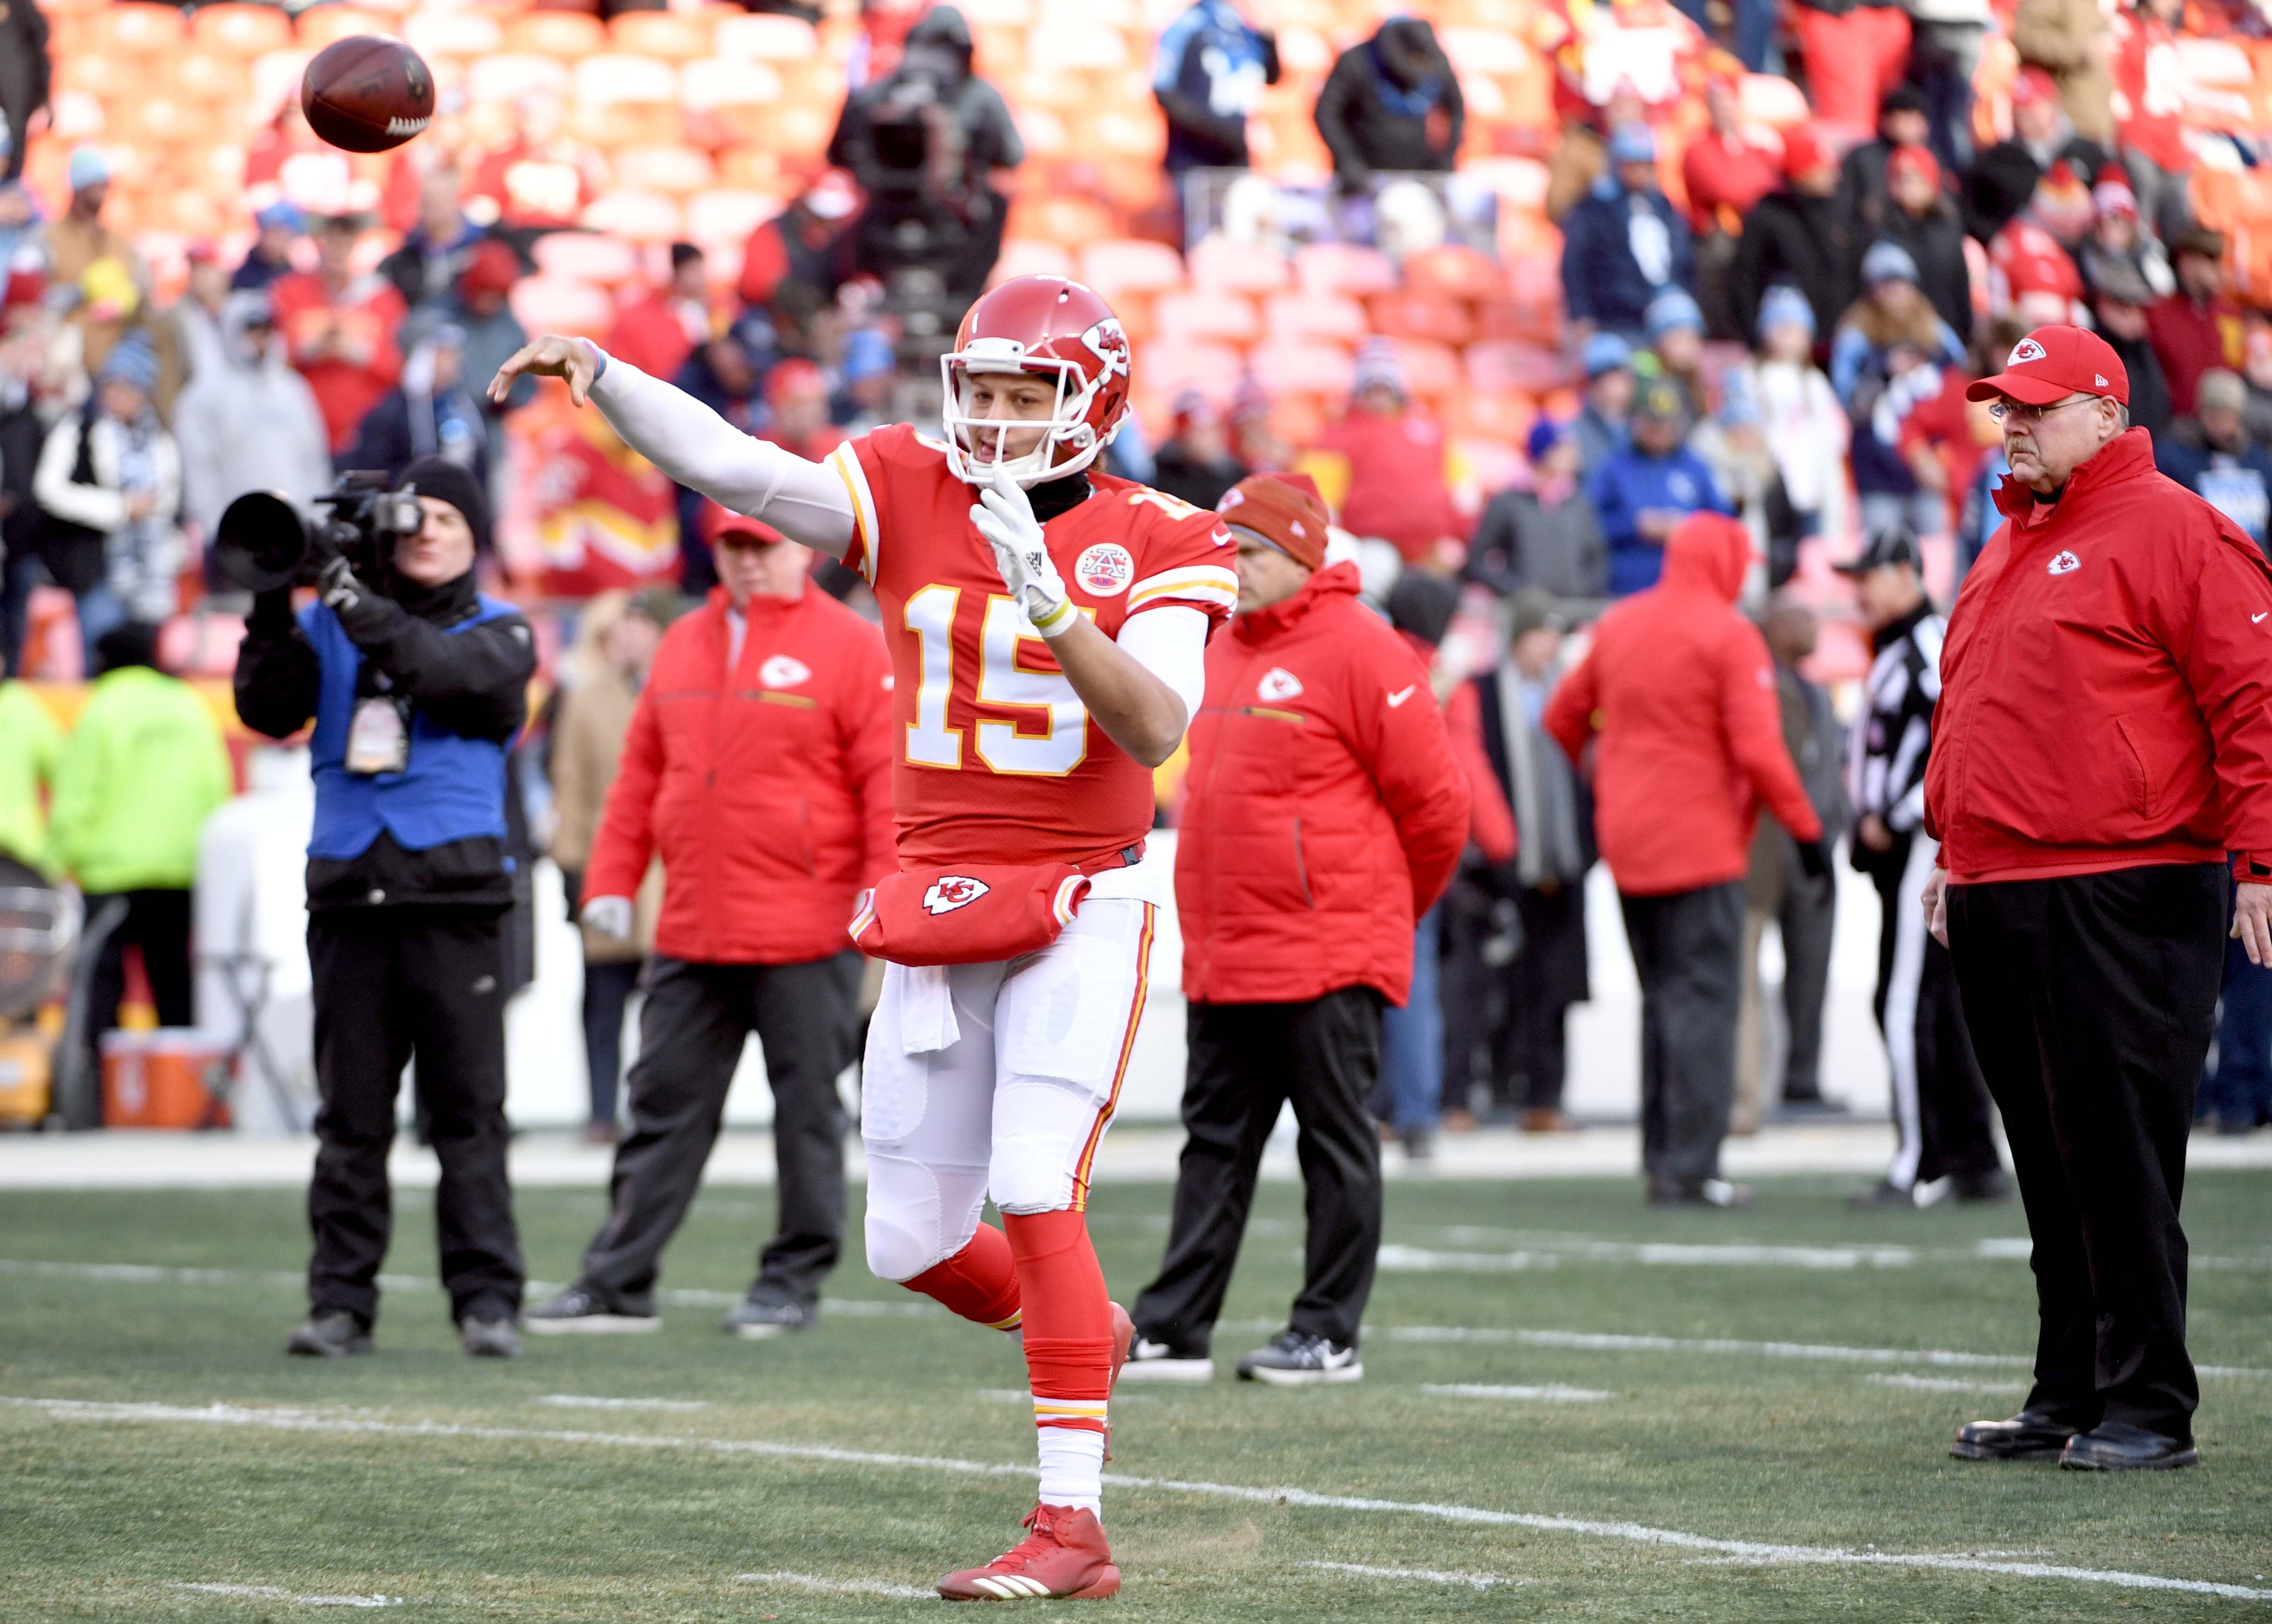 Kansas City Chiefs quarterback Patrick Mahomes warms up as head coach Andy Reid watches before the game against the Tennessee Titans in the AFC Wild Card playoff football game at Arrowhead stadium.